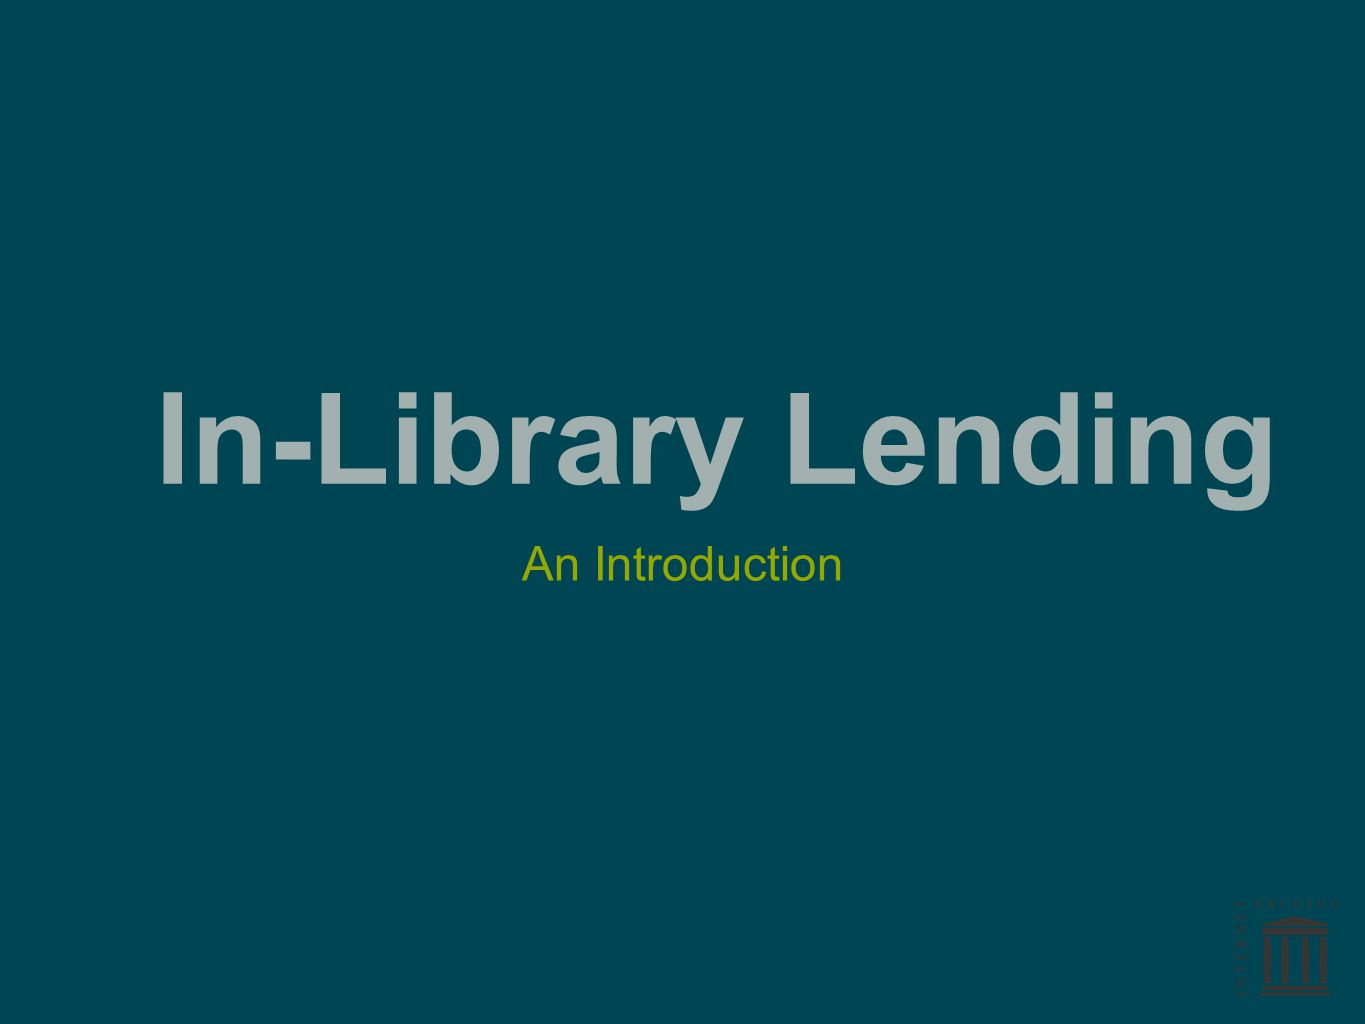 In-Library Lending An Introduction